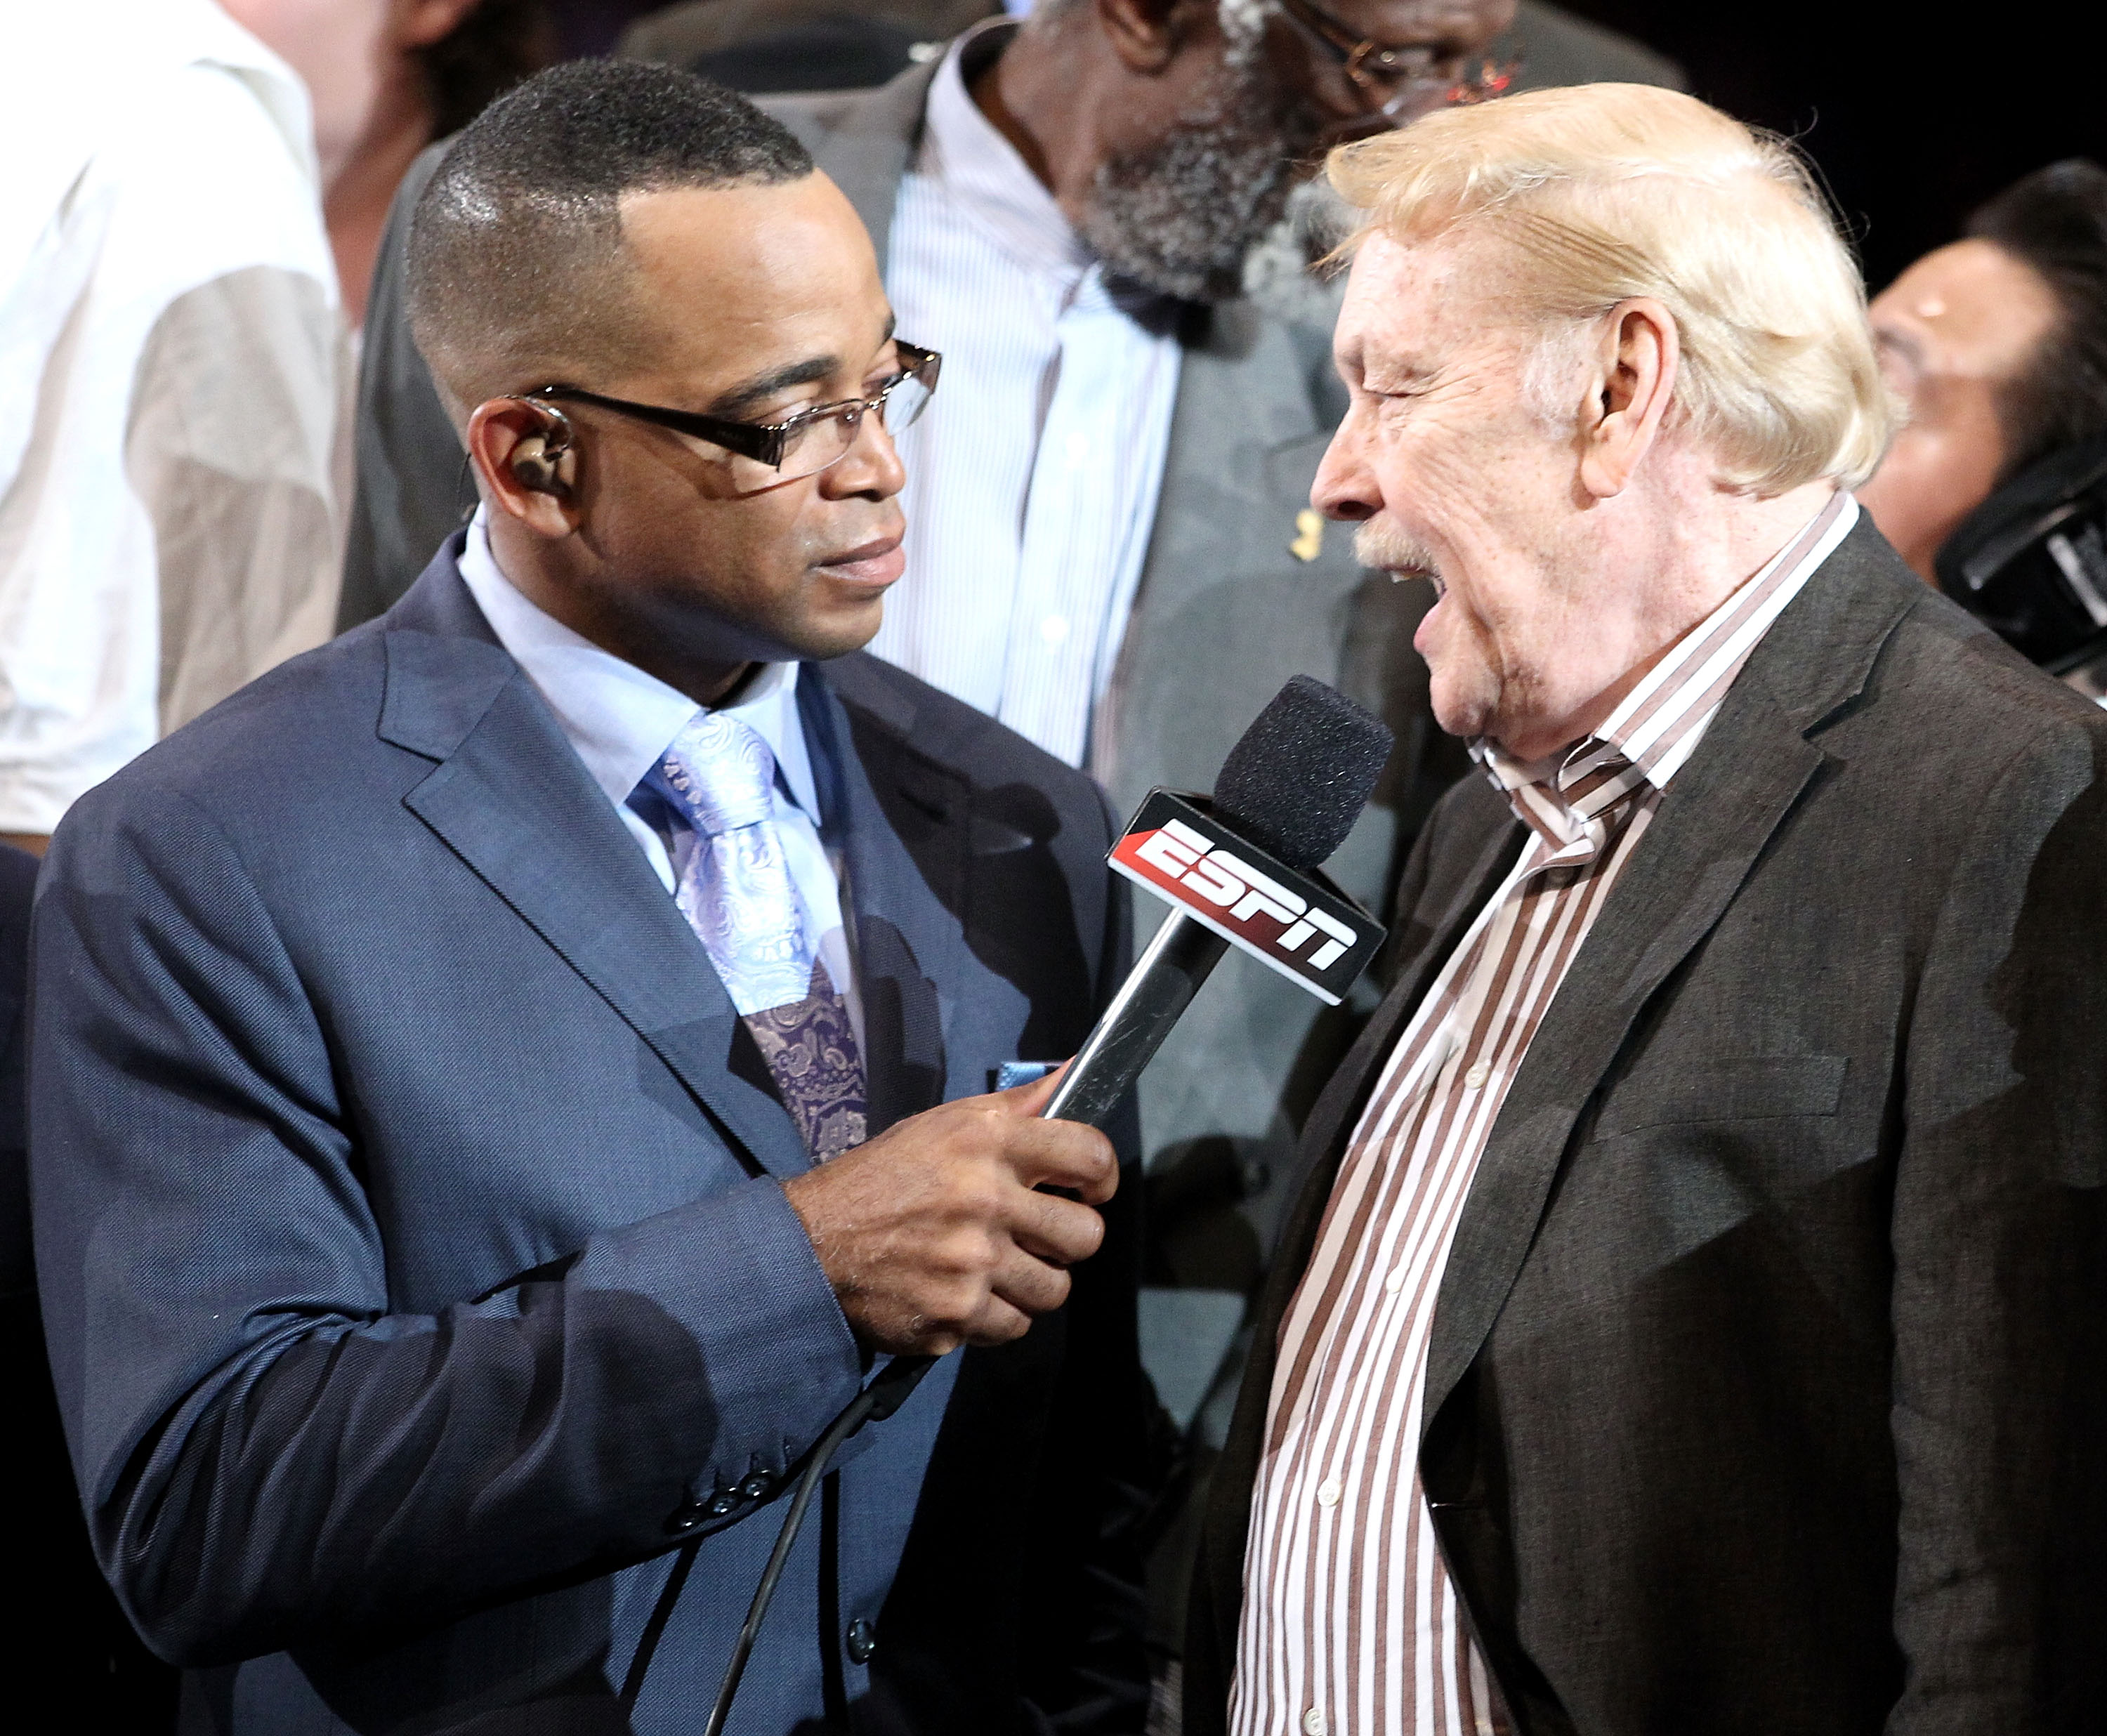 LOS ANGELES, CA - JUNE 17:  ESPN reporter Stuart Scott interviews owner Dr. Jerry Buss of the Los Angeles Lakers after their 83-79 victory against the Boston Celtics by holding up five fingers in Game Seven of the 2010 NBA Finals at Staples Center on June